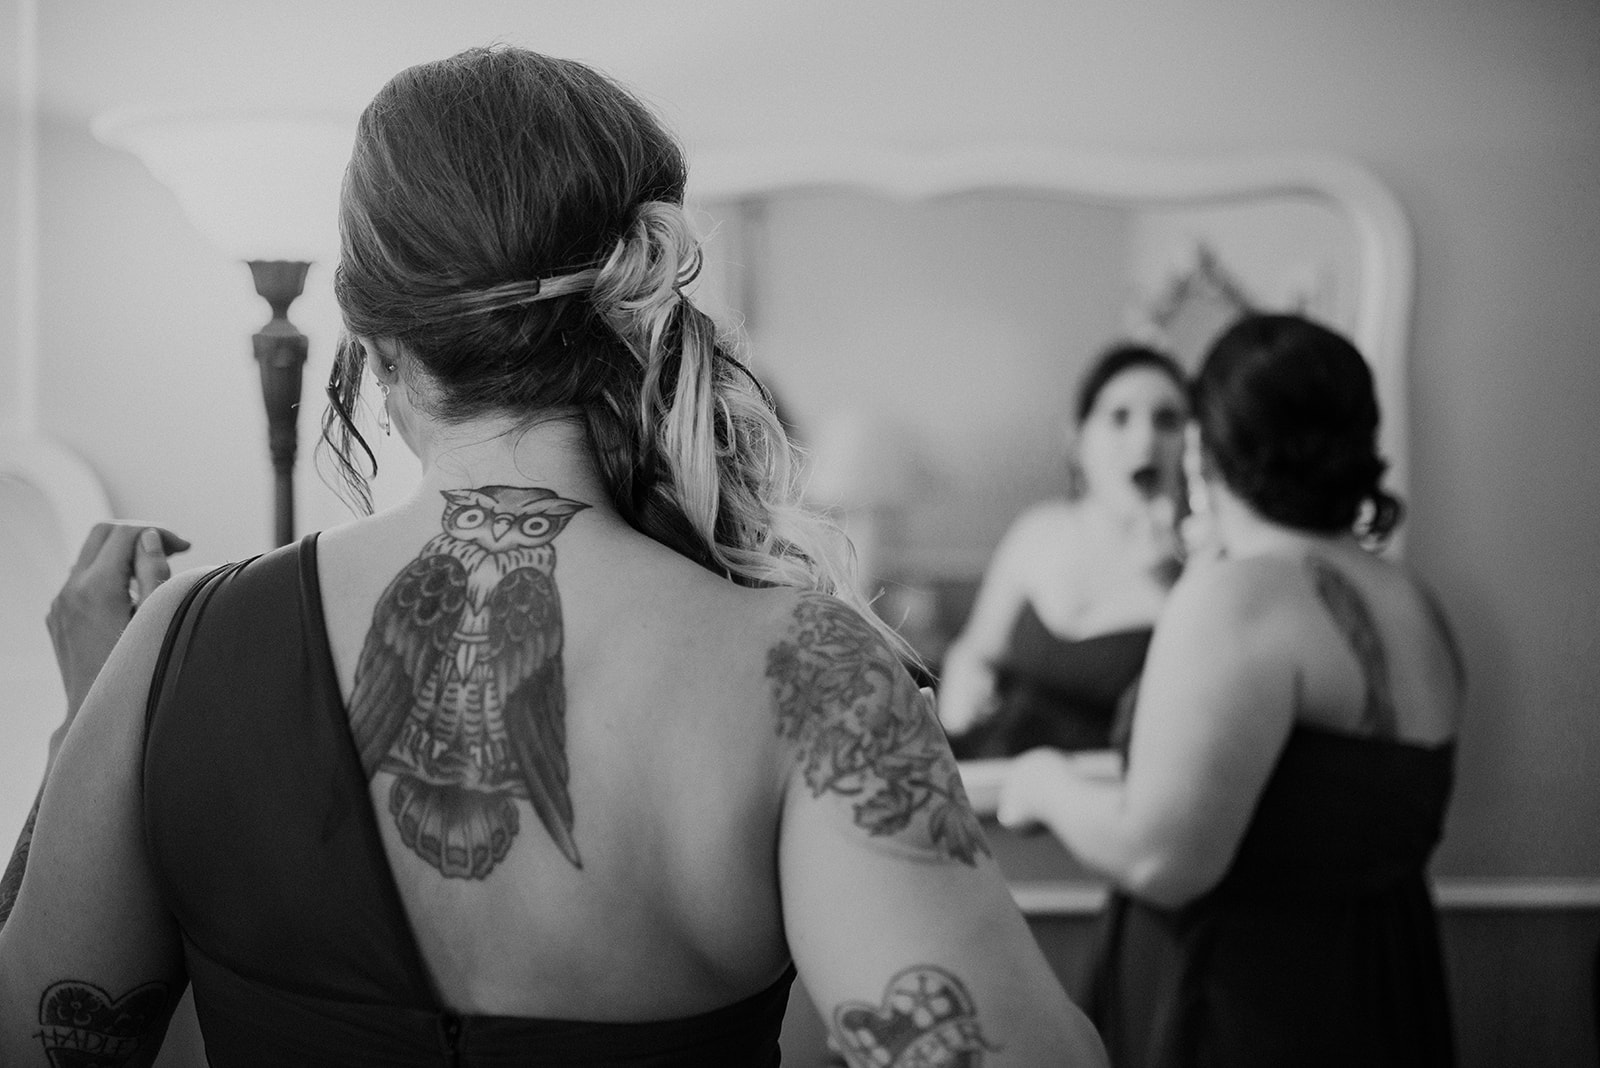 overthevineswisconsinwedding_0395.jpg